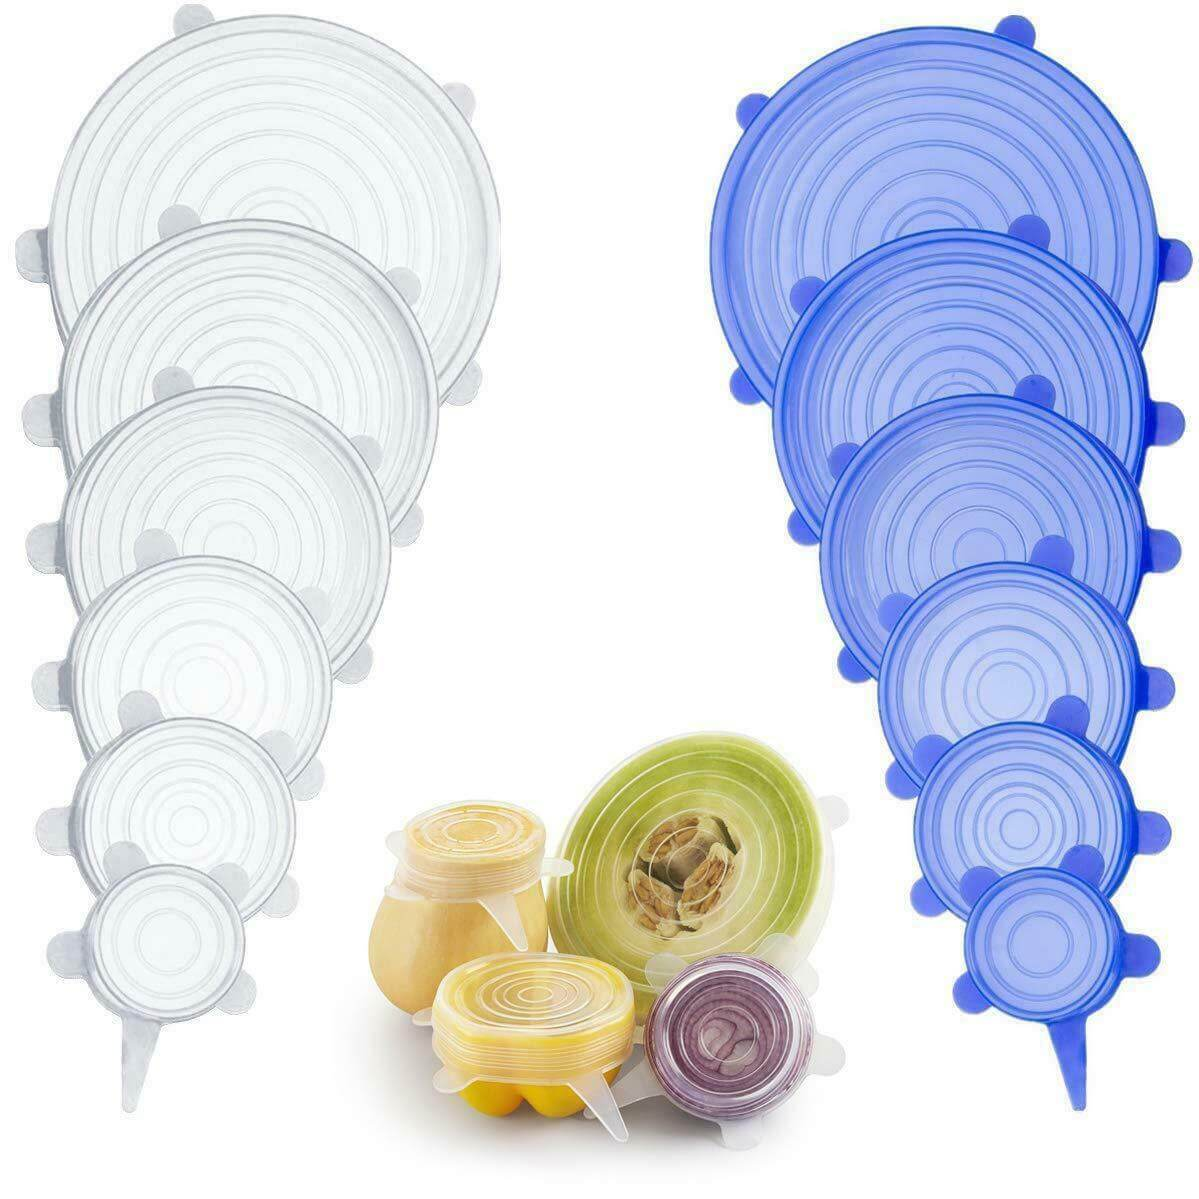 Flexi™ Silicone Reusable Lids (6pcs) - Geniusly PH